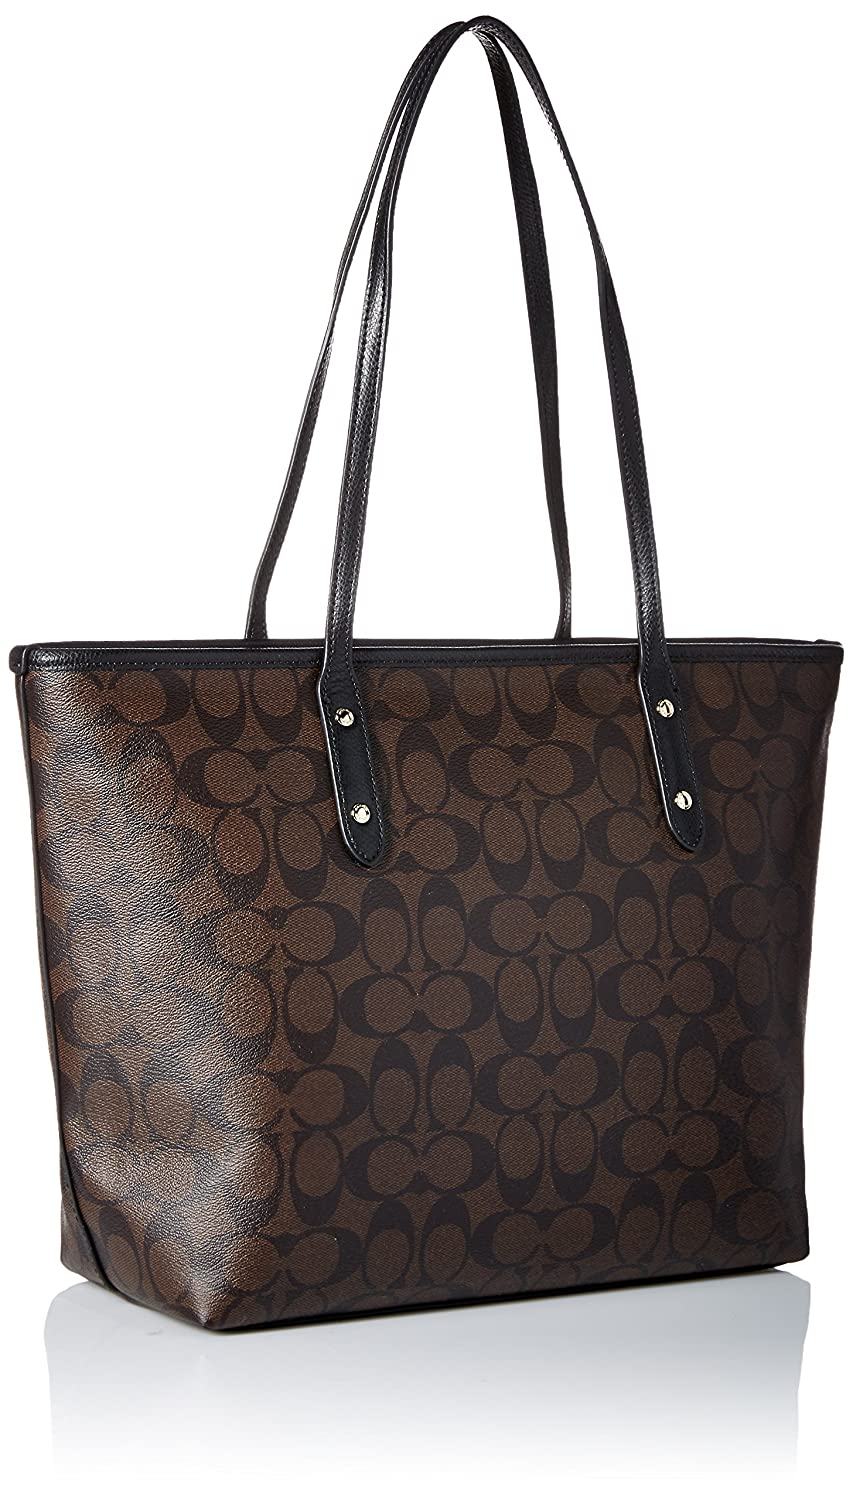 Buy coach signature city zip tote - brown black Online at Low Prices in  India - Amazon.in 0f3fe65e006f3